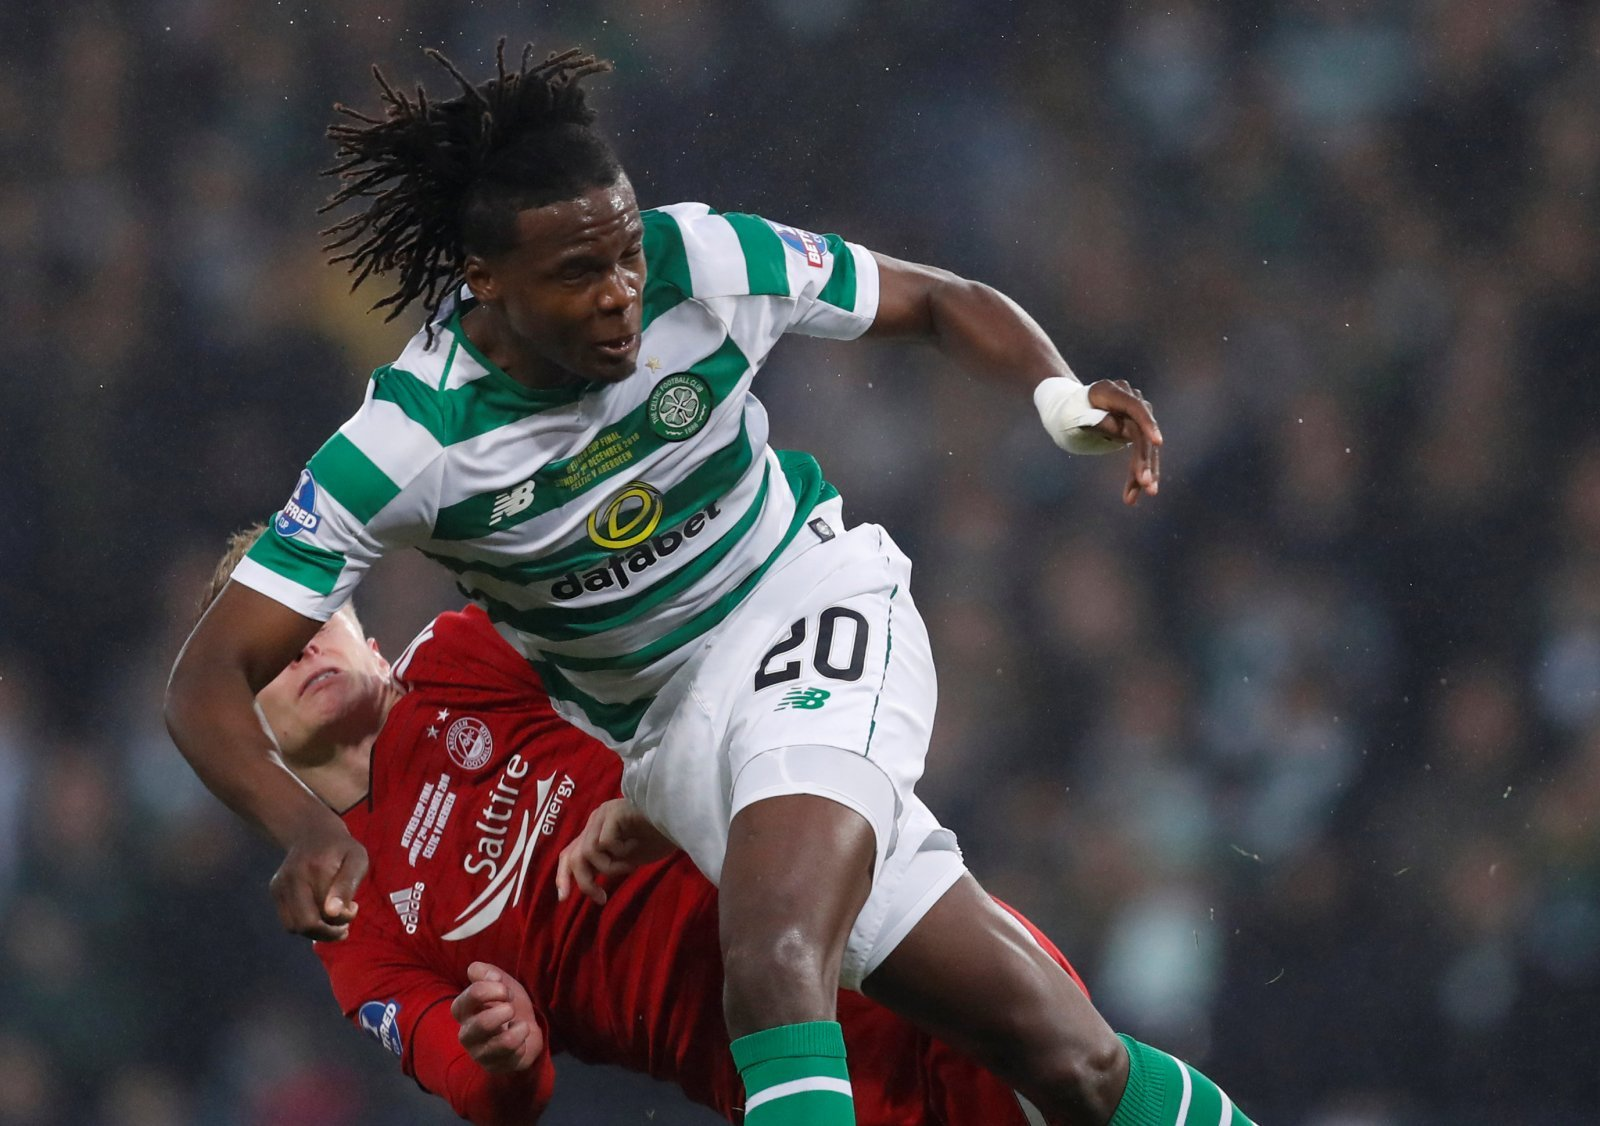 Celtic team news: Rodgers confirms Boyata to miss Motherwell trip